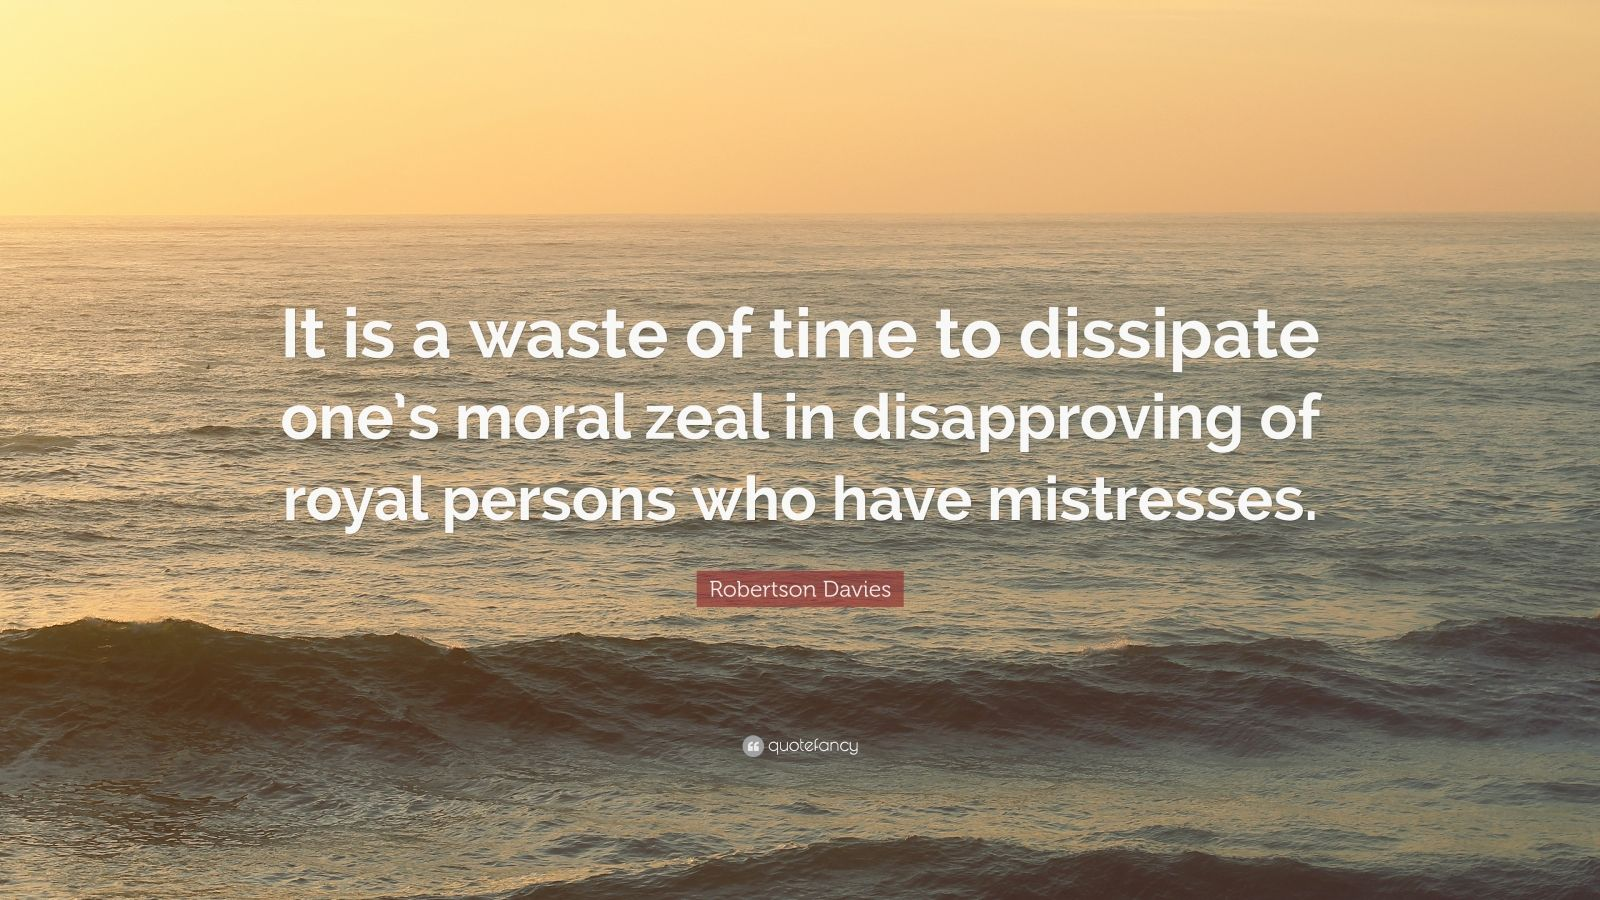 """Robertson Davies Quote: """"It is a waste of time to dissipate one's moral zeal in disapproving of royal persons who have mistresses."""""""